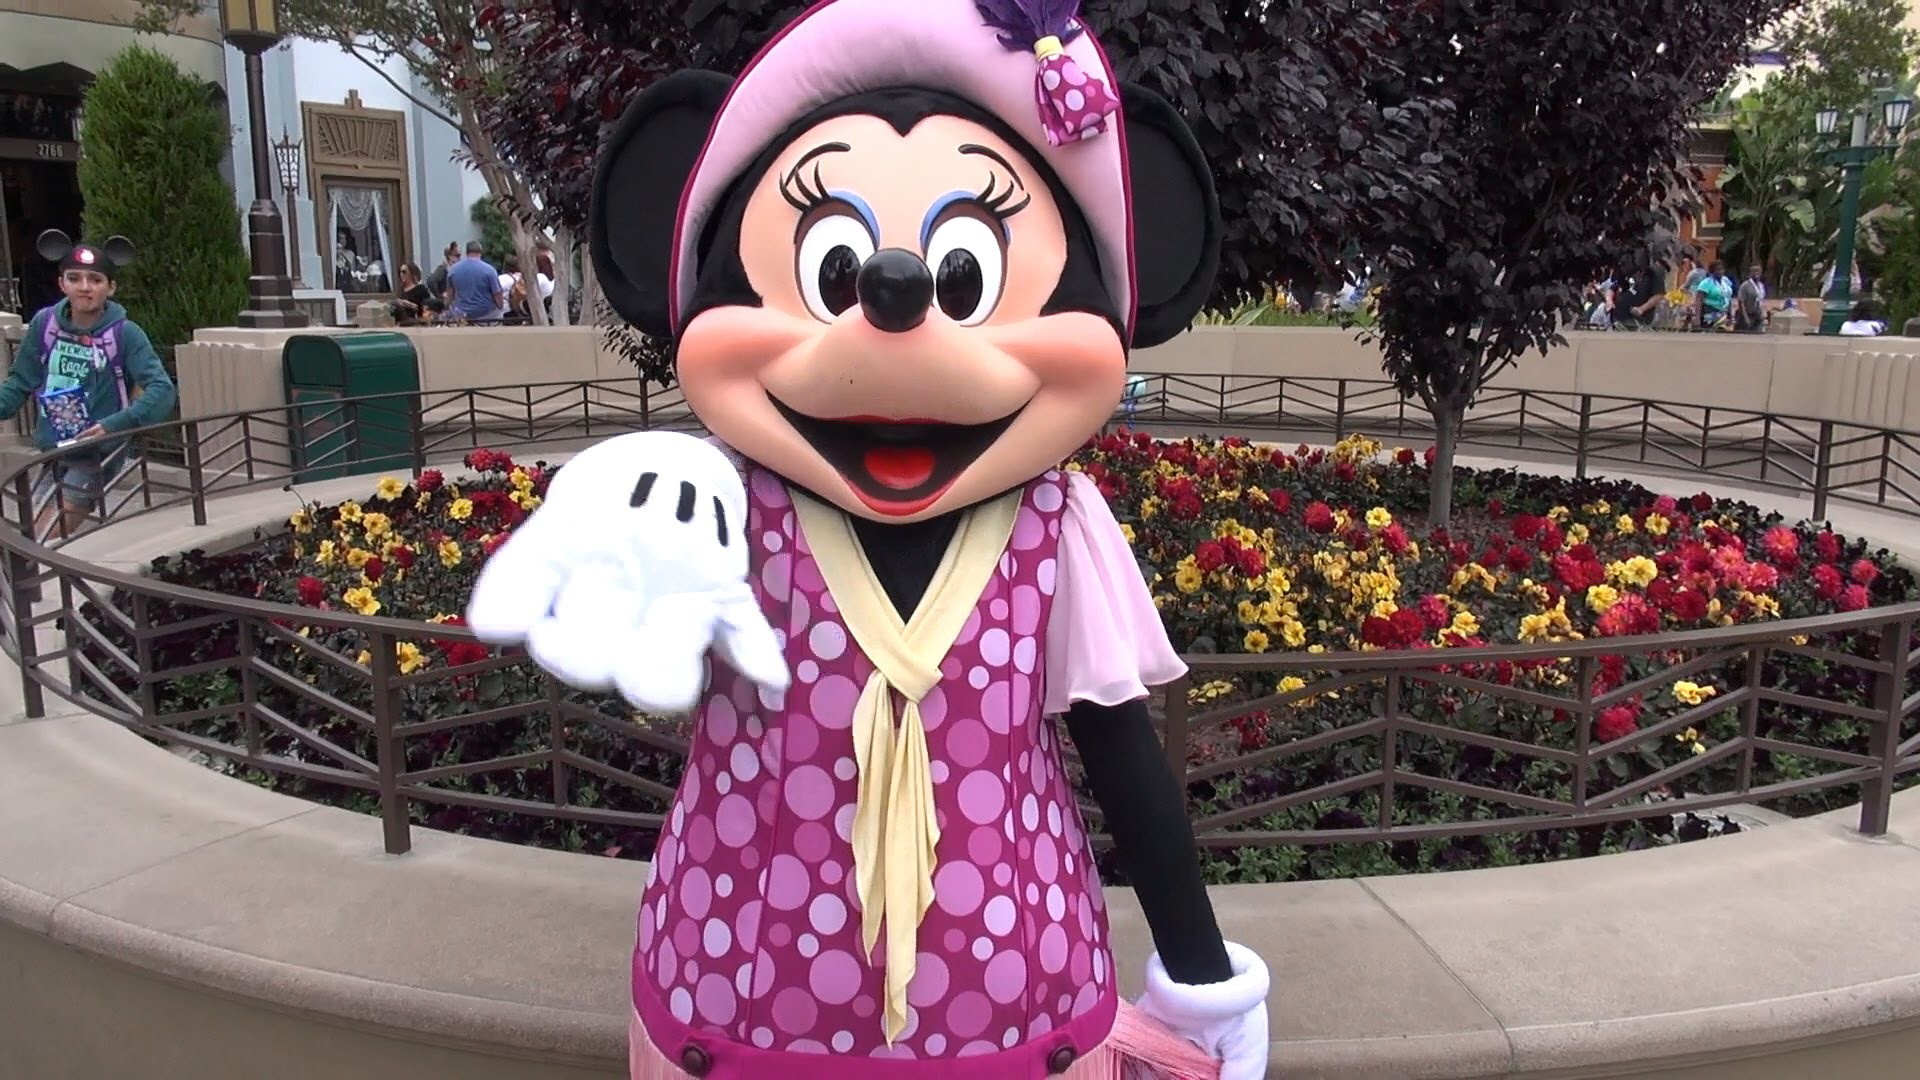 1920x1080 Minnie Mouse Greets Us in a New Costume at Disney California Adventure,  Disneyland Resort 60th